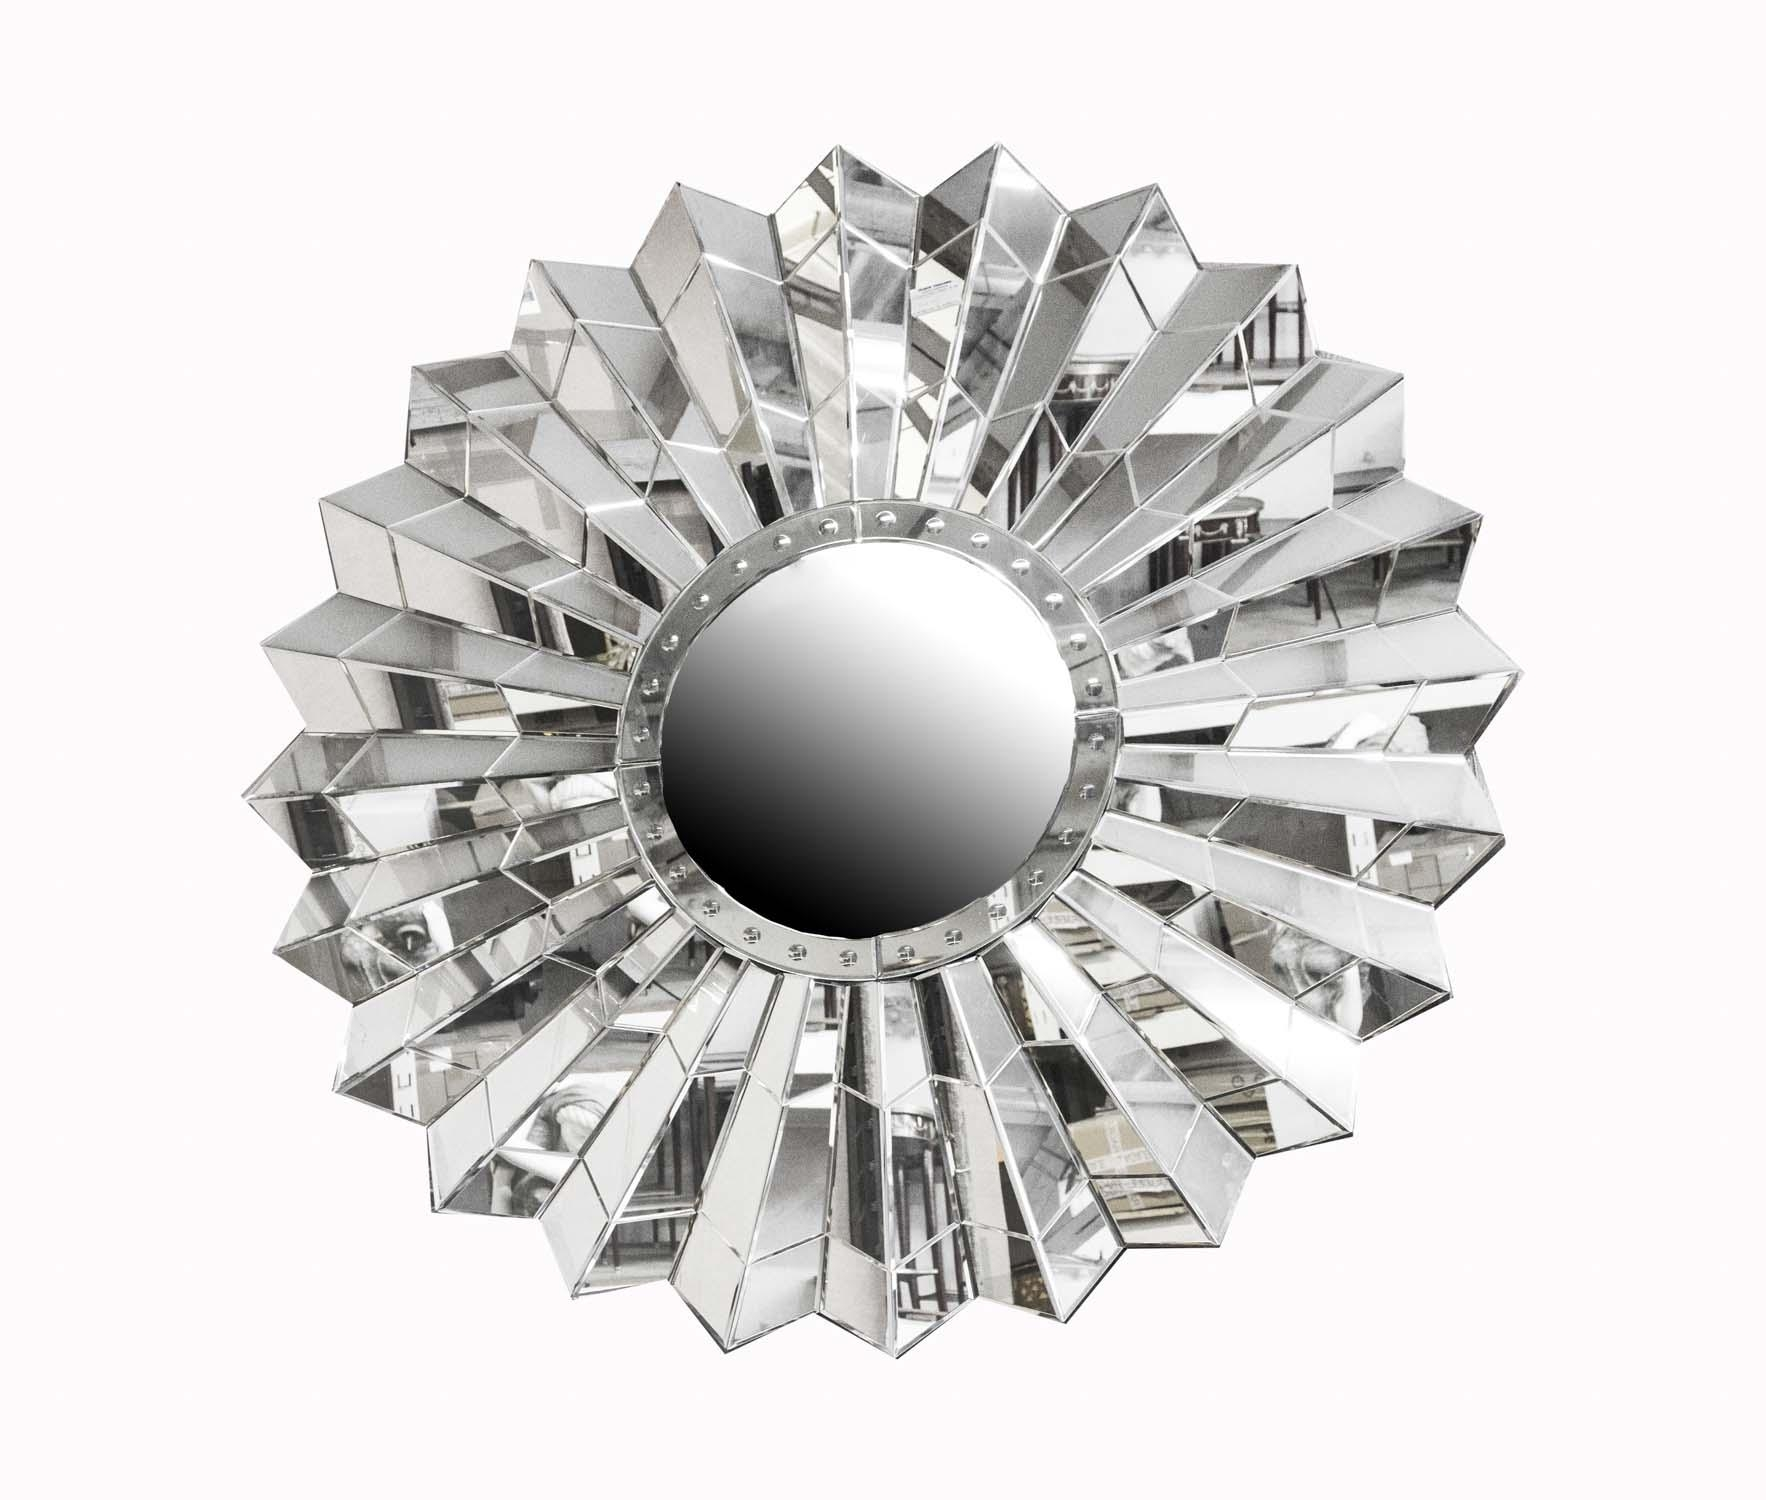 Circular Art Deco Style Sunburst Mirror 150 X 150 Cm Throughout Art Deco Style Mirrors (View 10 of 20)